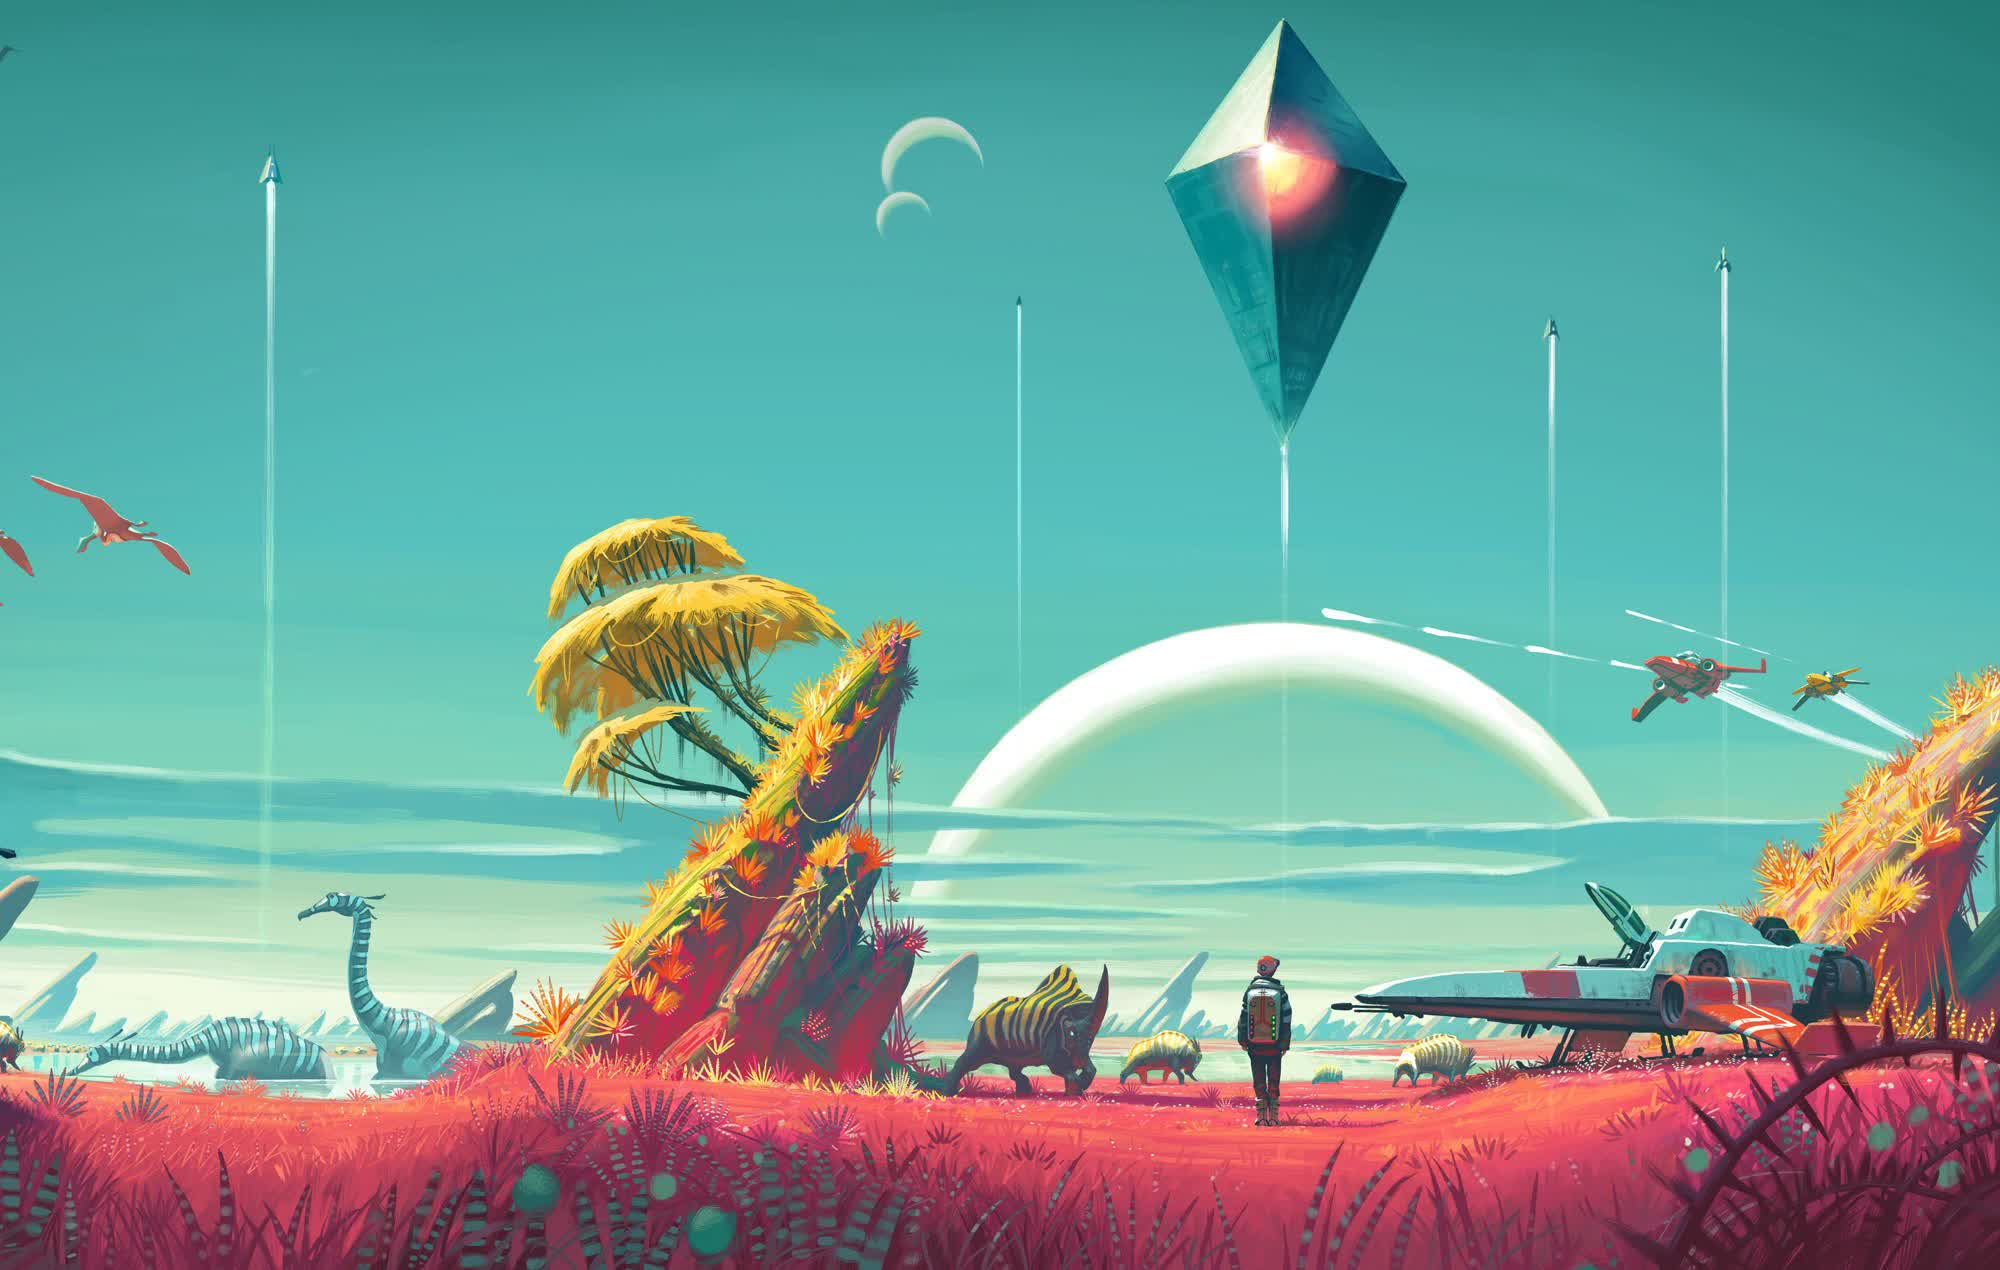 No Man's Sky finally gains a Mostly Positive Steam rating, five years after launch